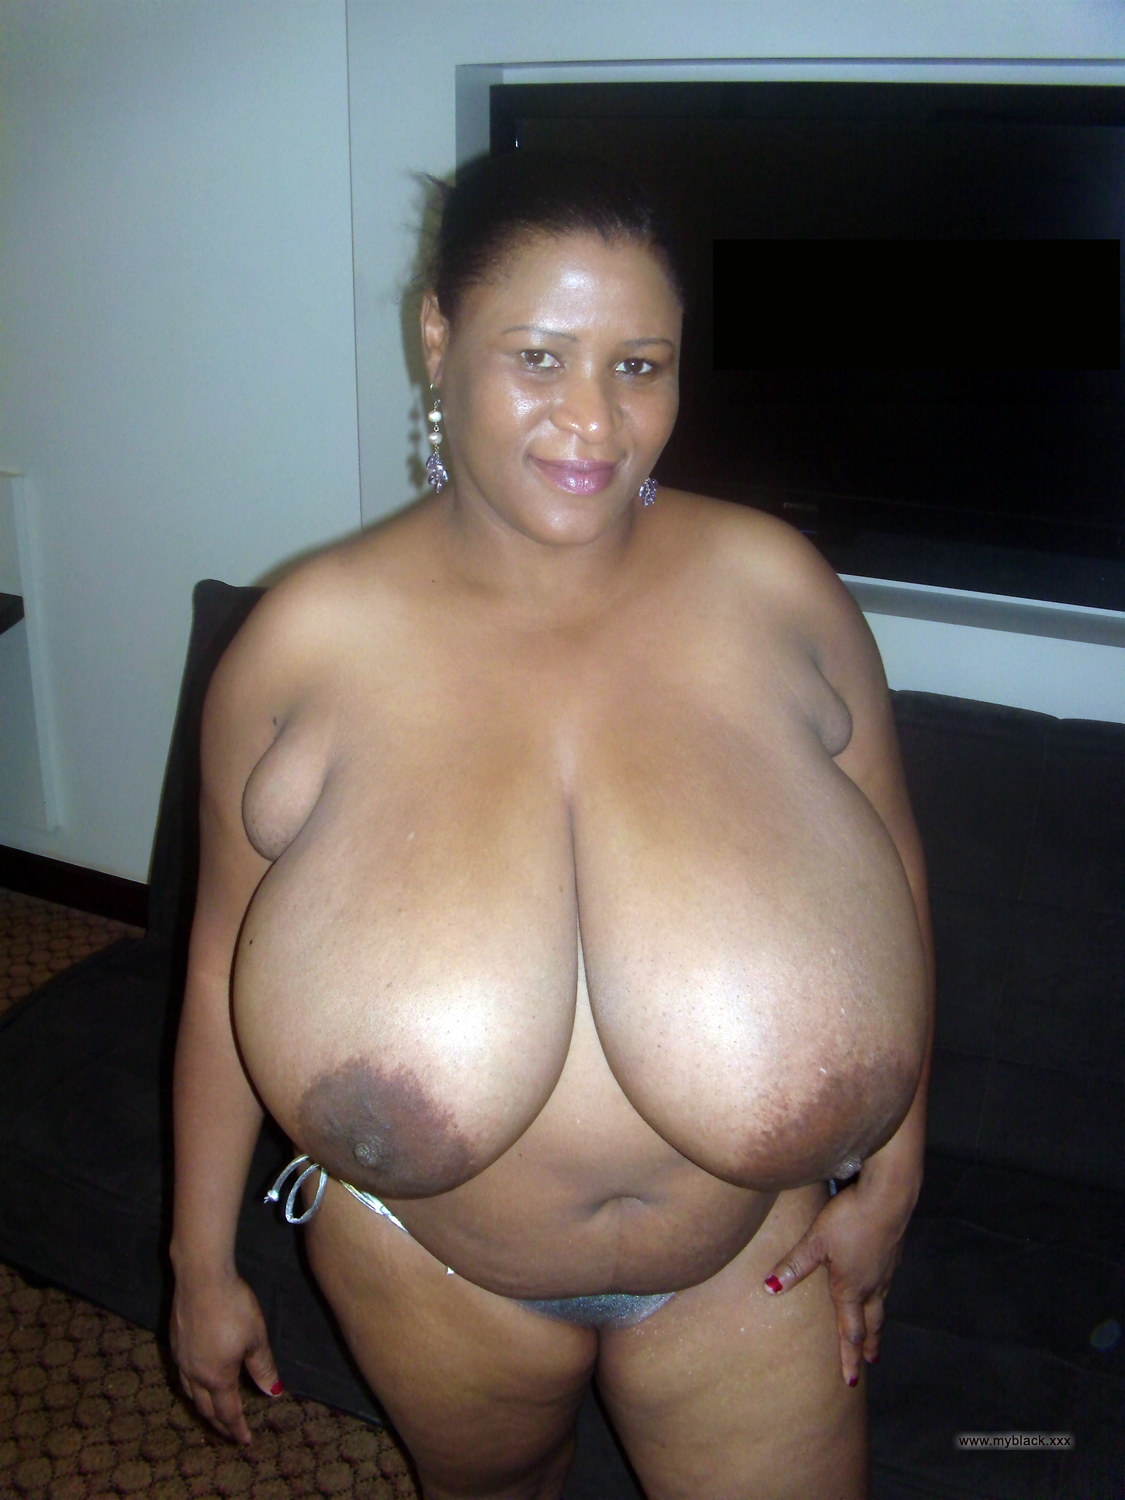 Mature ebony big tits gallery Black Amateurs Naked For Fans Of Hairy Black Pussy And Big Breasts Asses Private Porn Photos